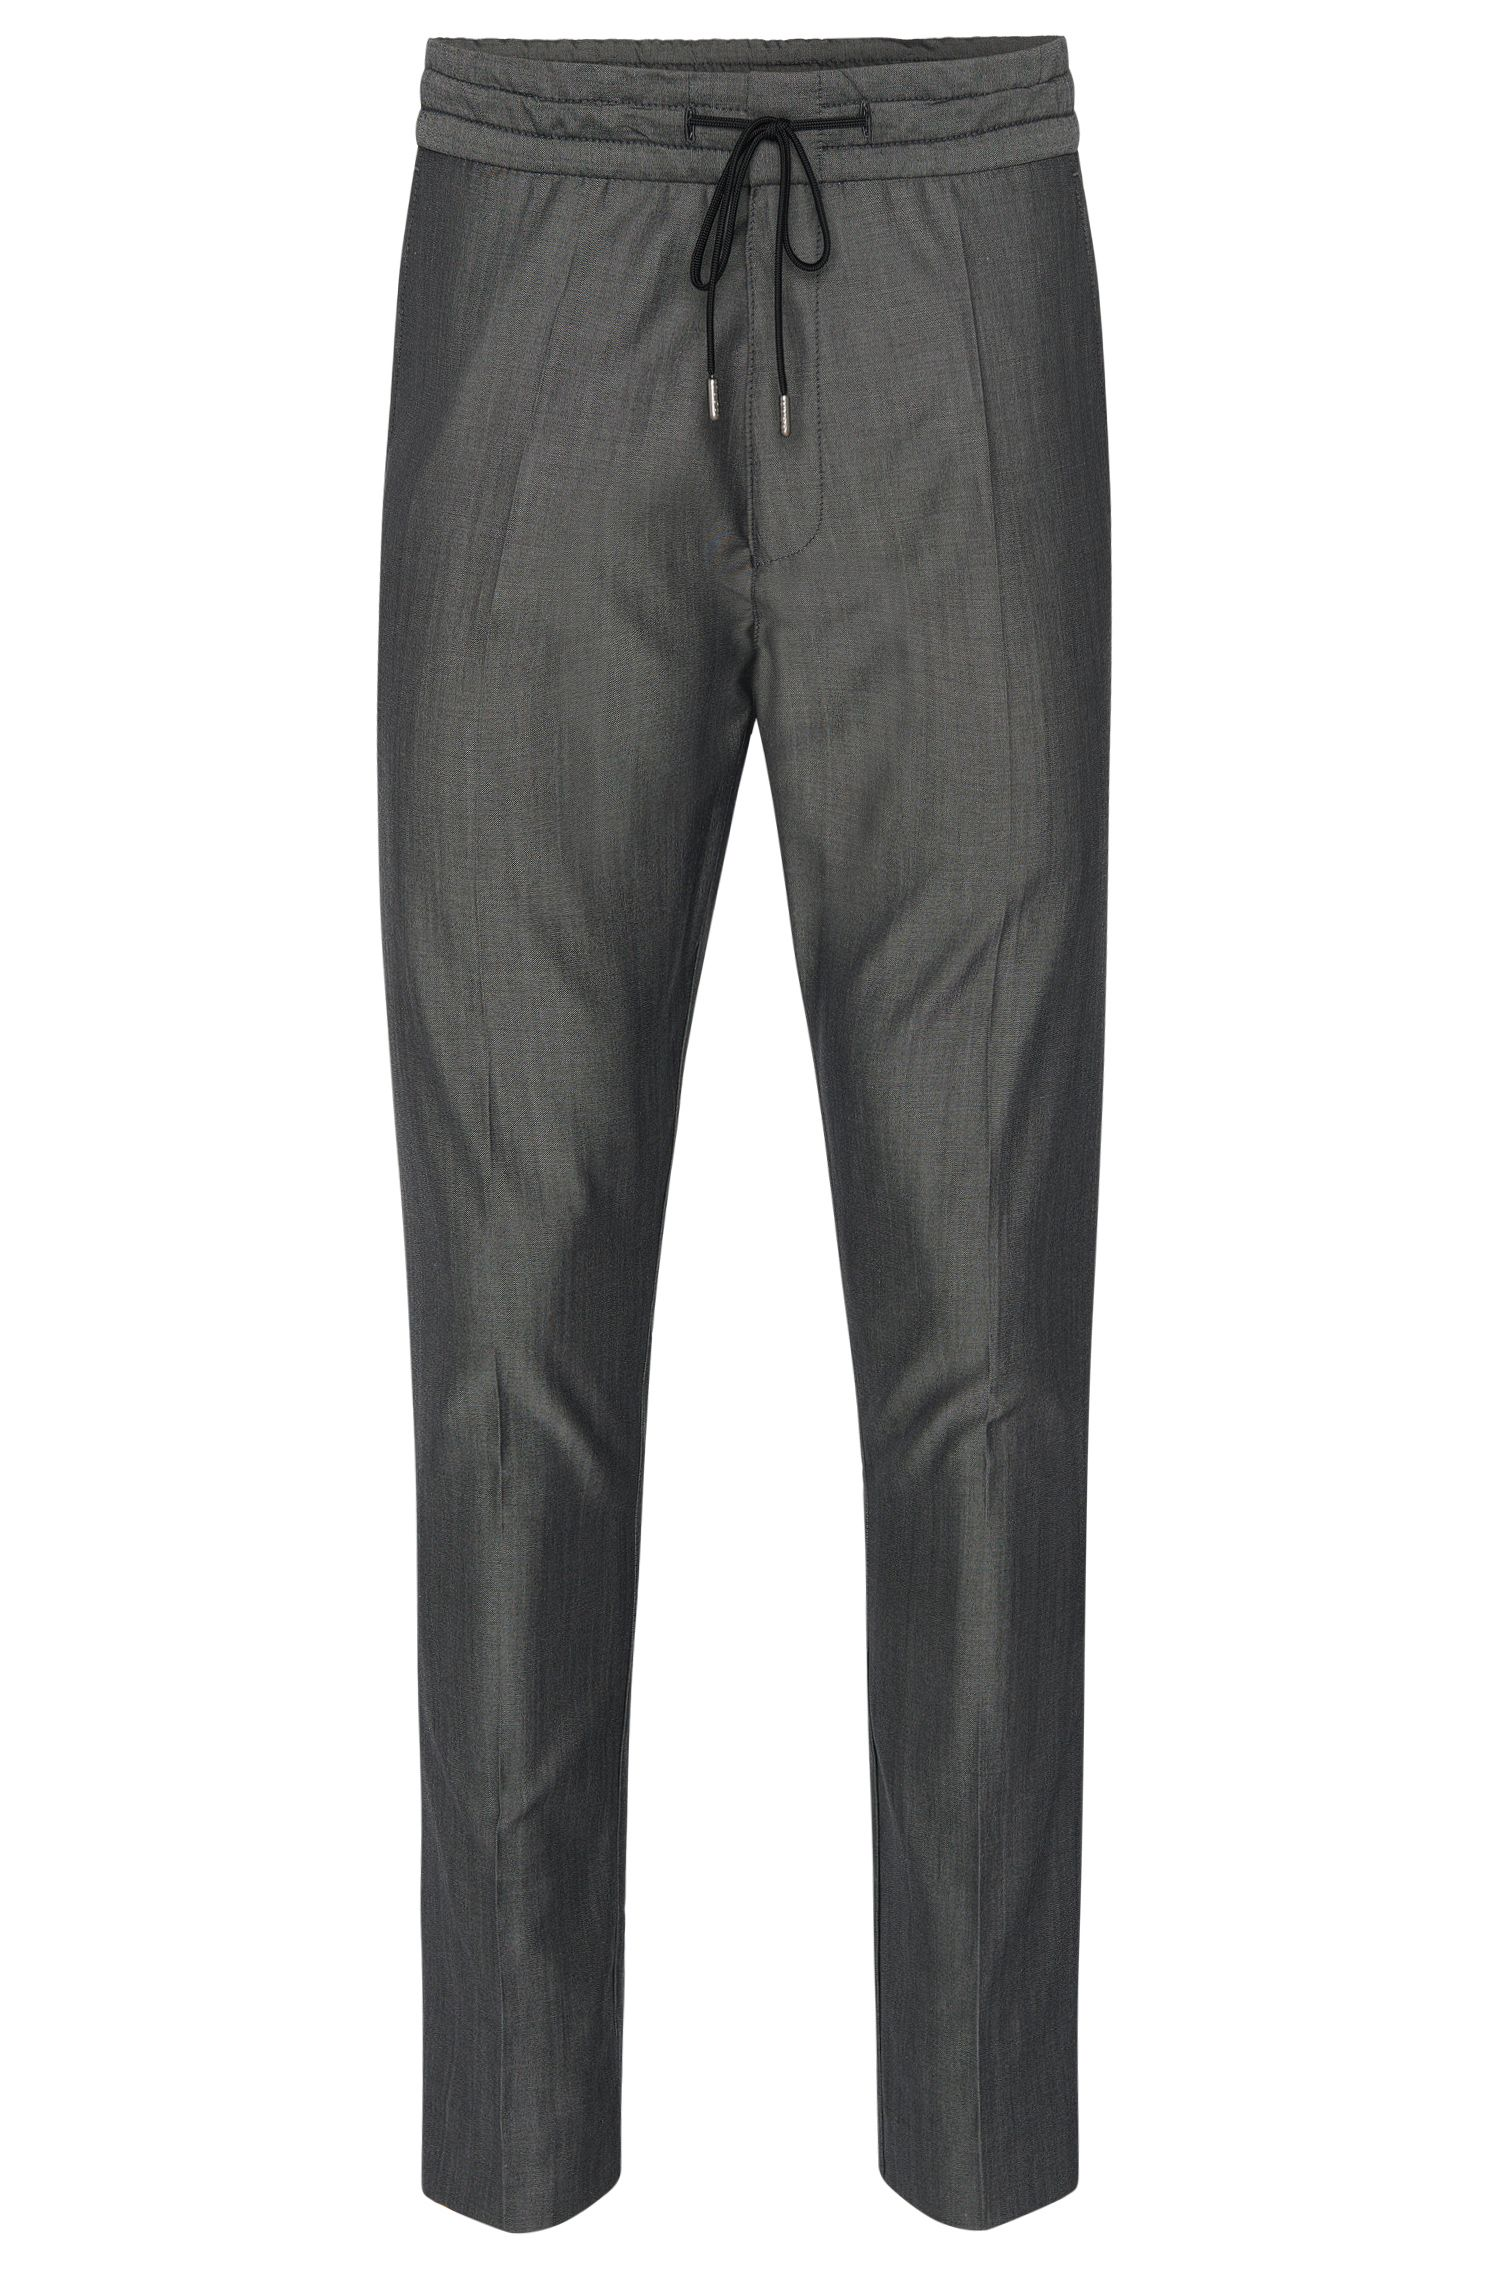 'Himesh' | Tapered Fit, Virgin Wool Cotton Drawstring Trousers